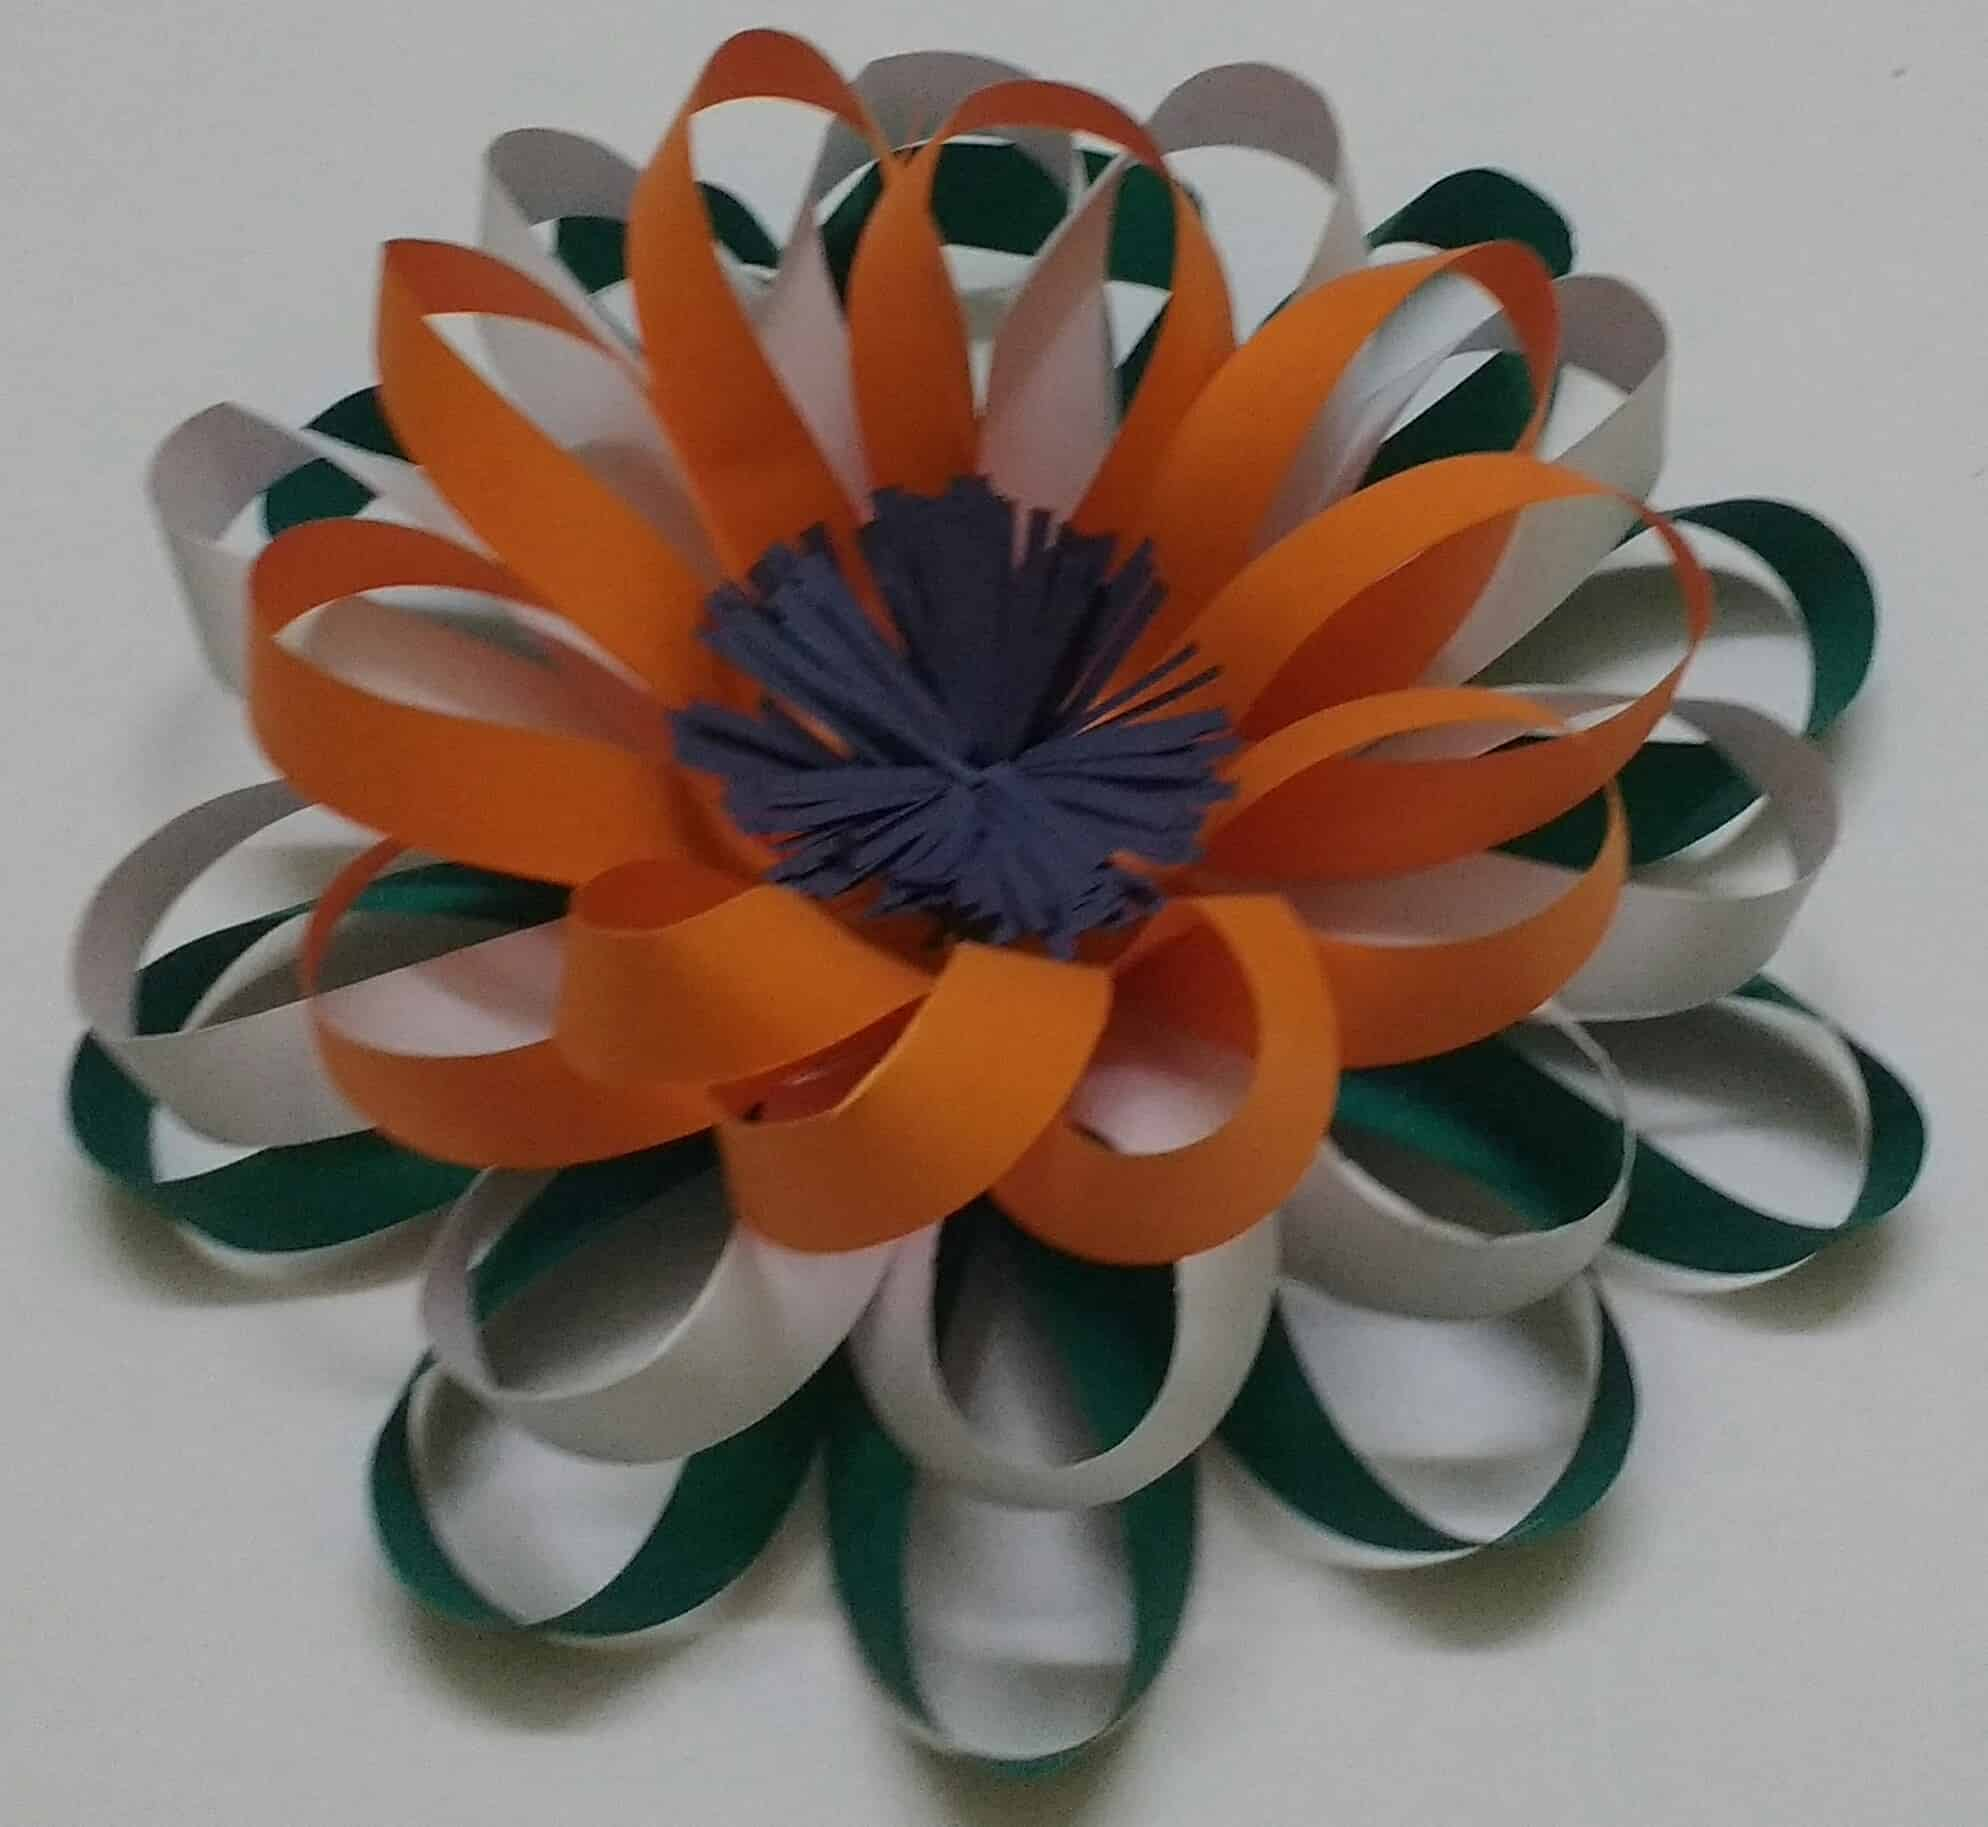 Easy tricolour paper flower republic day and independence day crafts mightylinksfo